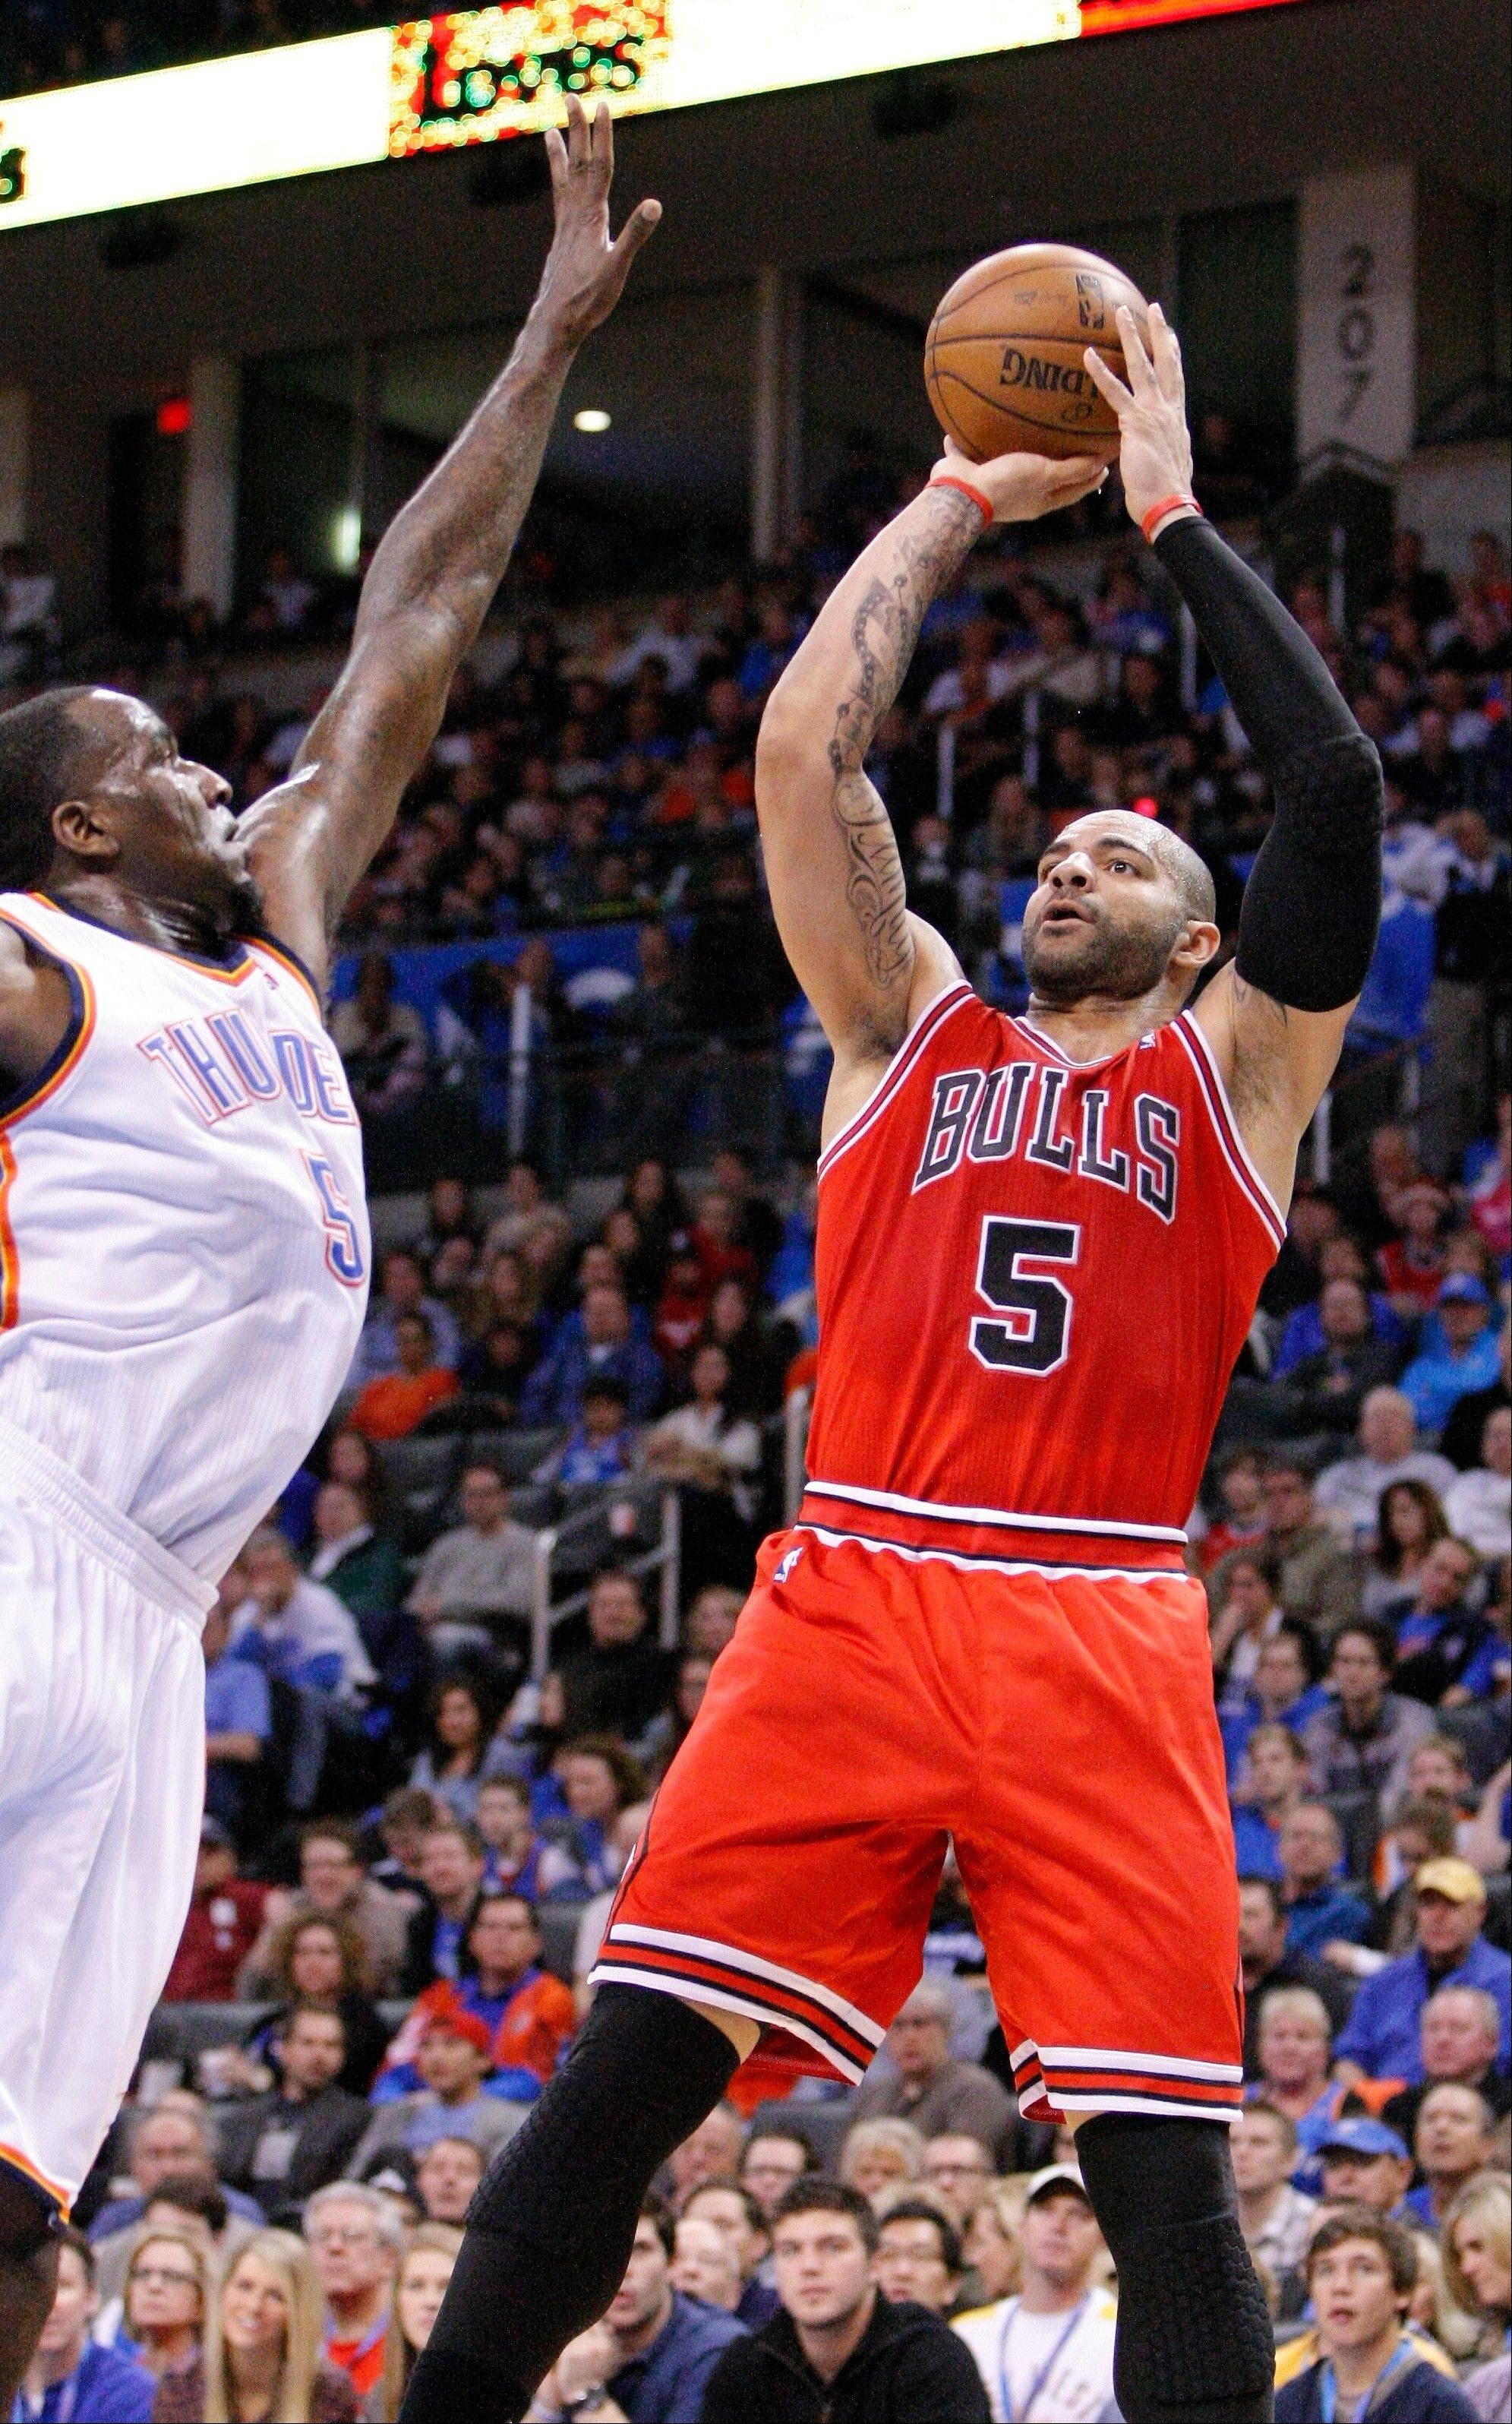 Chicago Bulls forward Carlos Boozer goes up for a basket as Oklahoma City Thunder center Kendrick Perkins defends during the first quarter of an NBA basketball game in Oklahoma City, Sunday, Feb. 24, 2013.